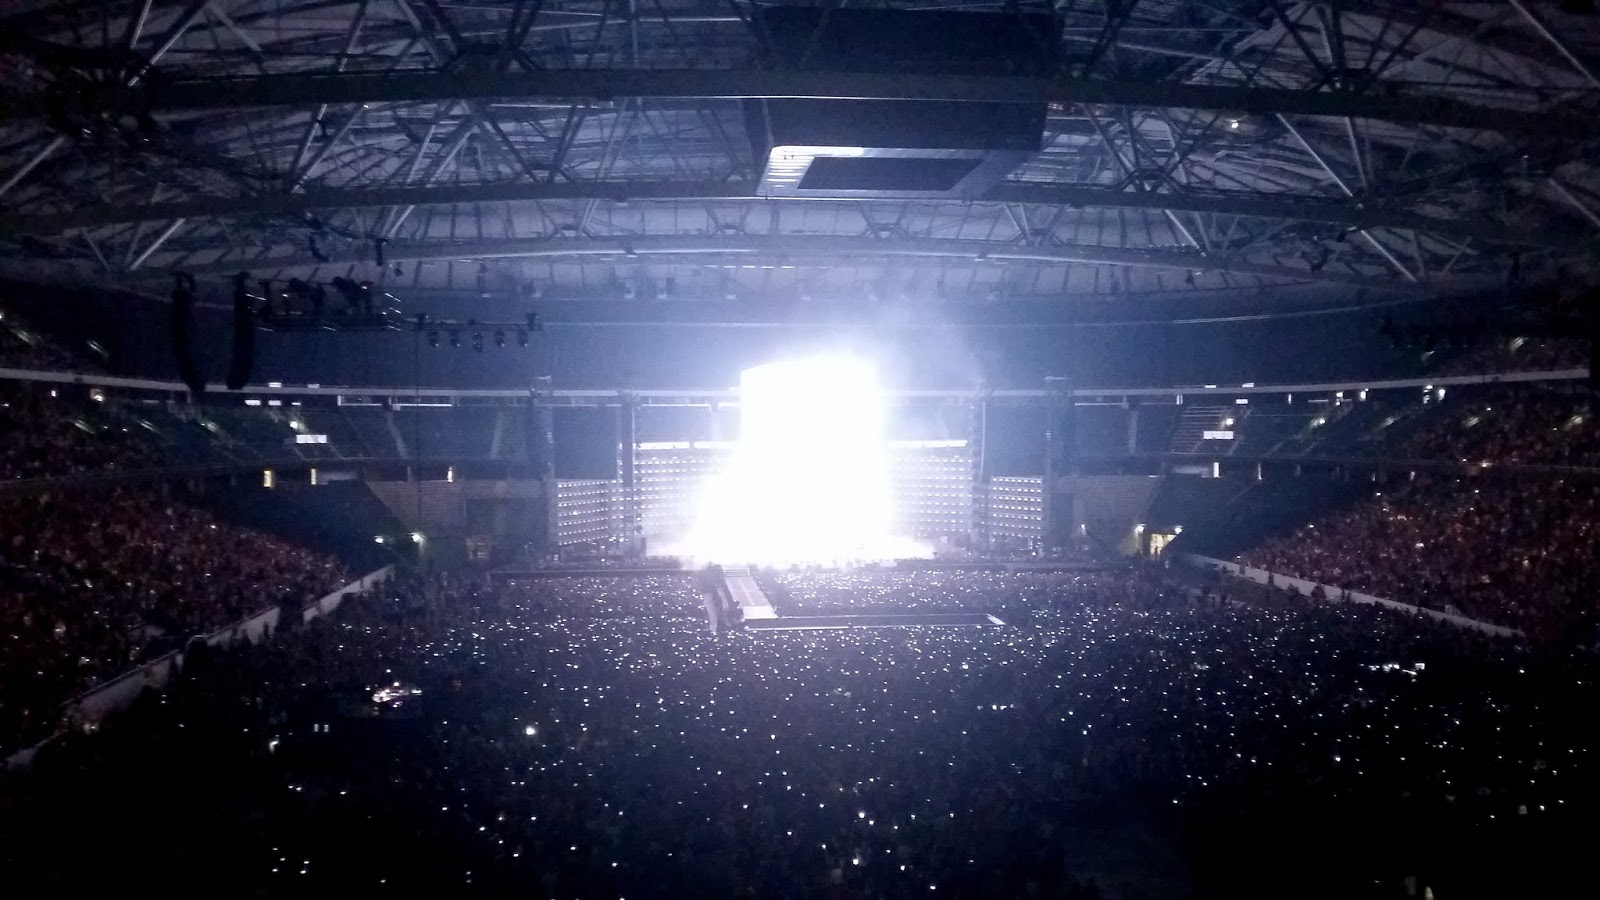 Friends arena beyonce